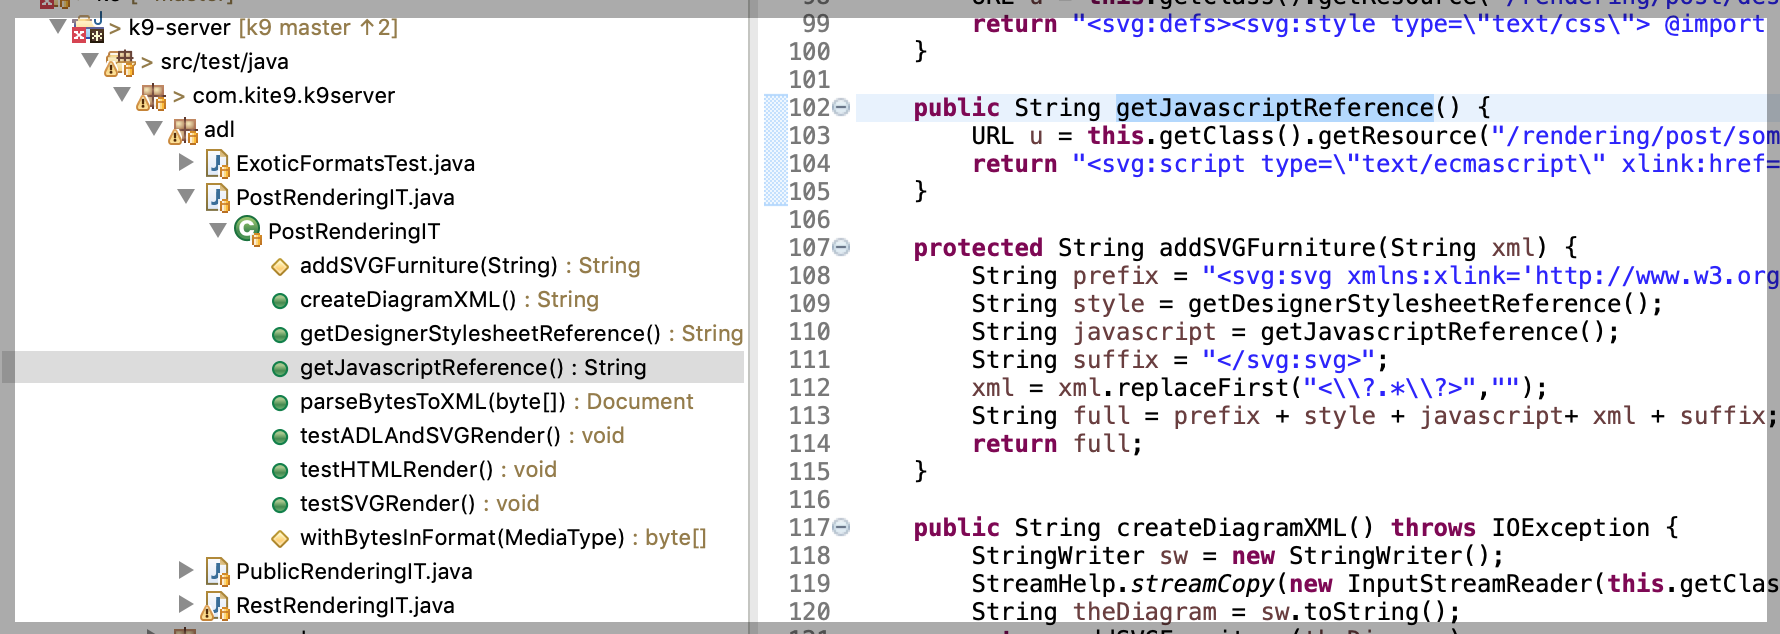 Compositional hierarchies on a larger project:  methods, classes, packages, directories, projects